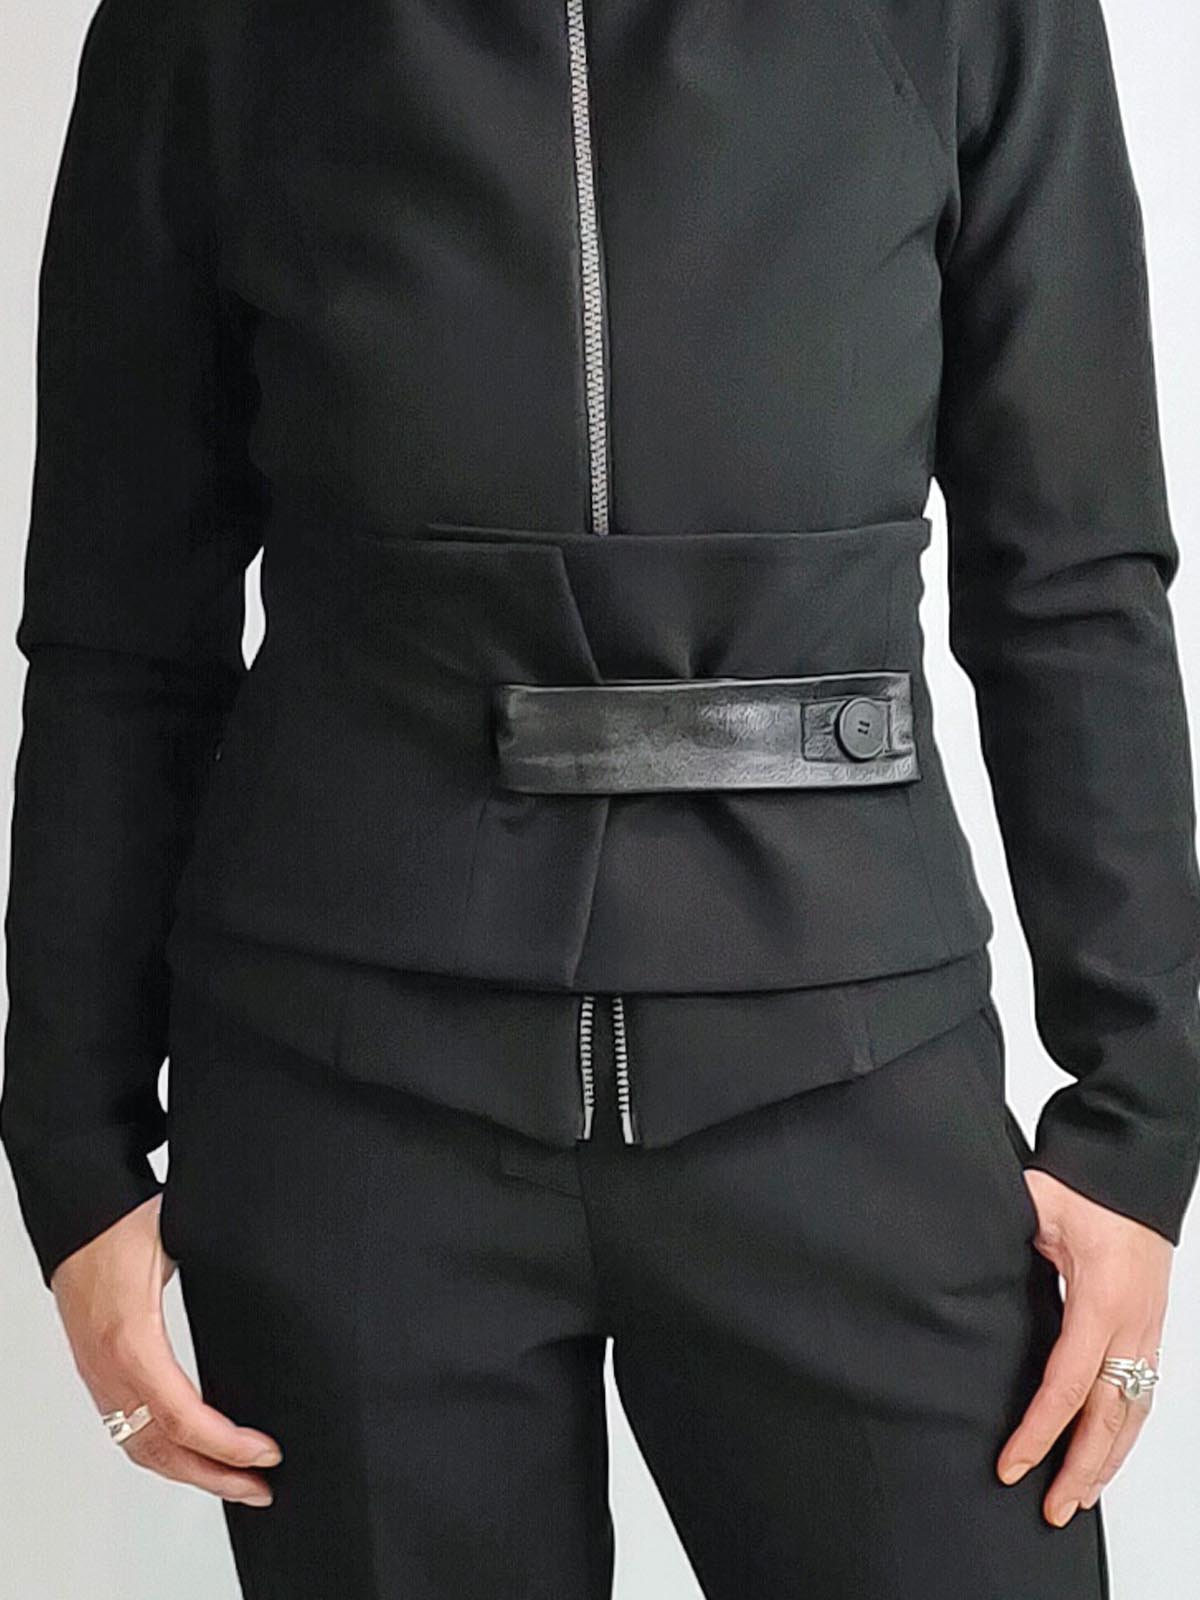 Ania Schierholt Belt [2195/66] Black